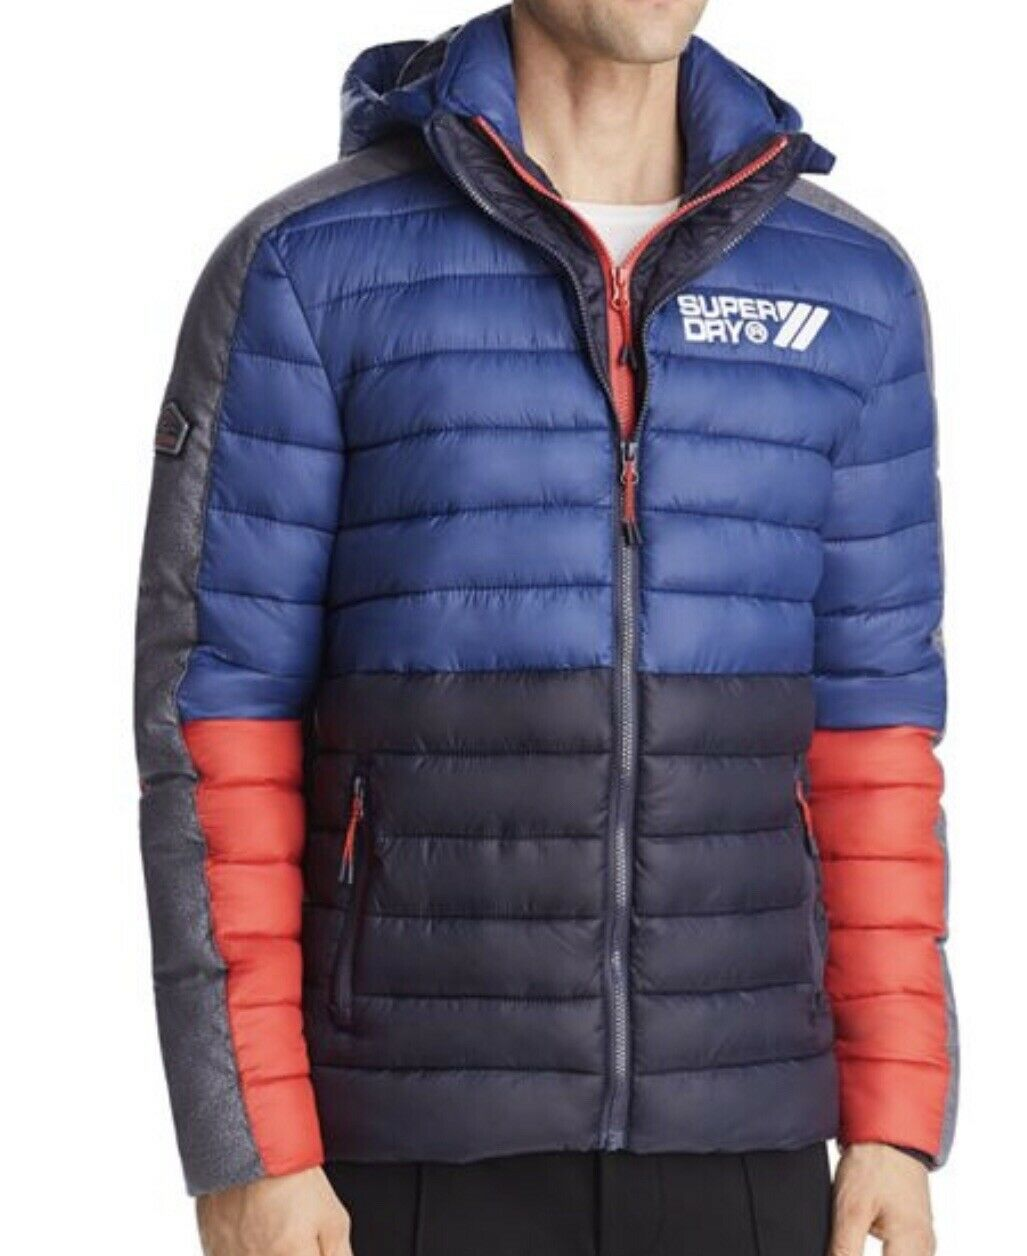 SUPERDRY Fuji Farbe-Block Puffer Jacket Harbour Navy (Größe LARGE) BNWT